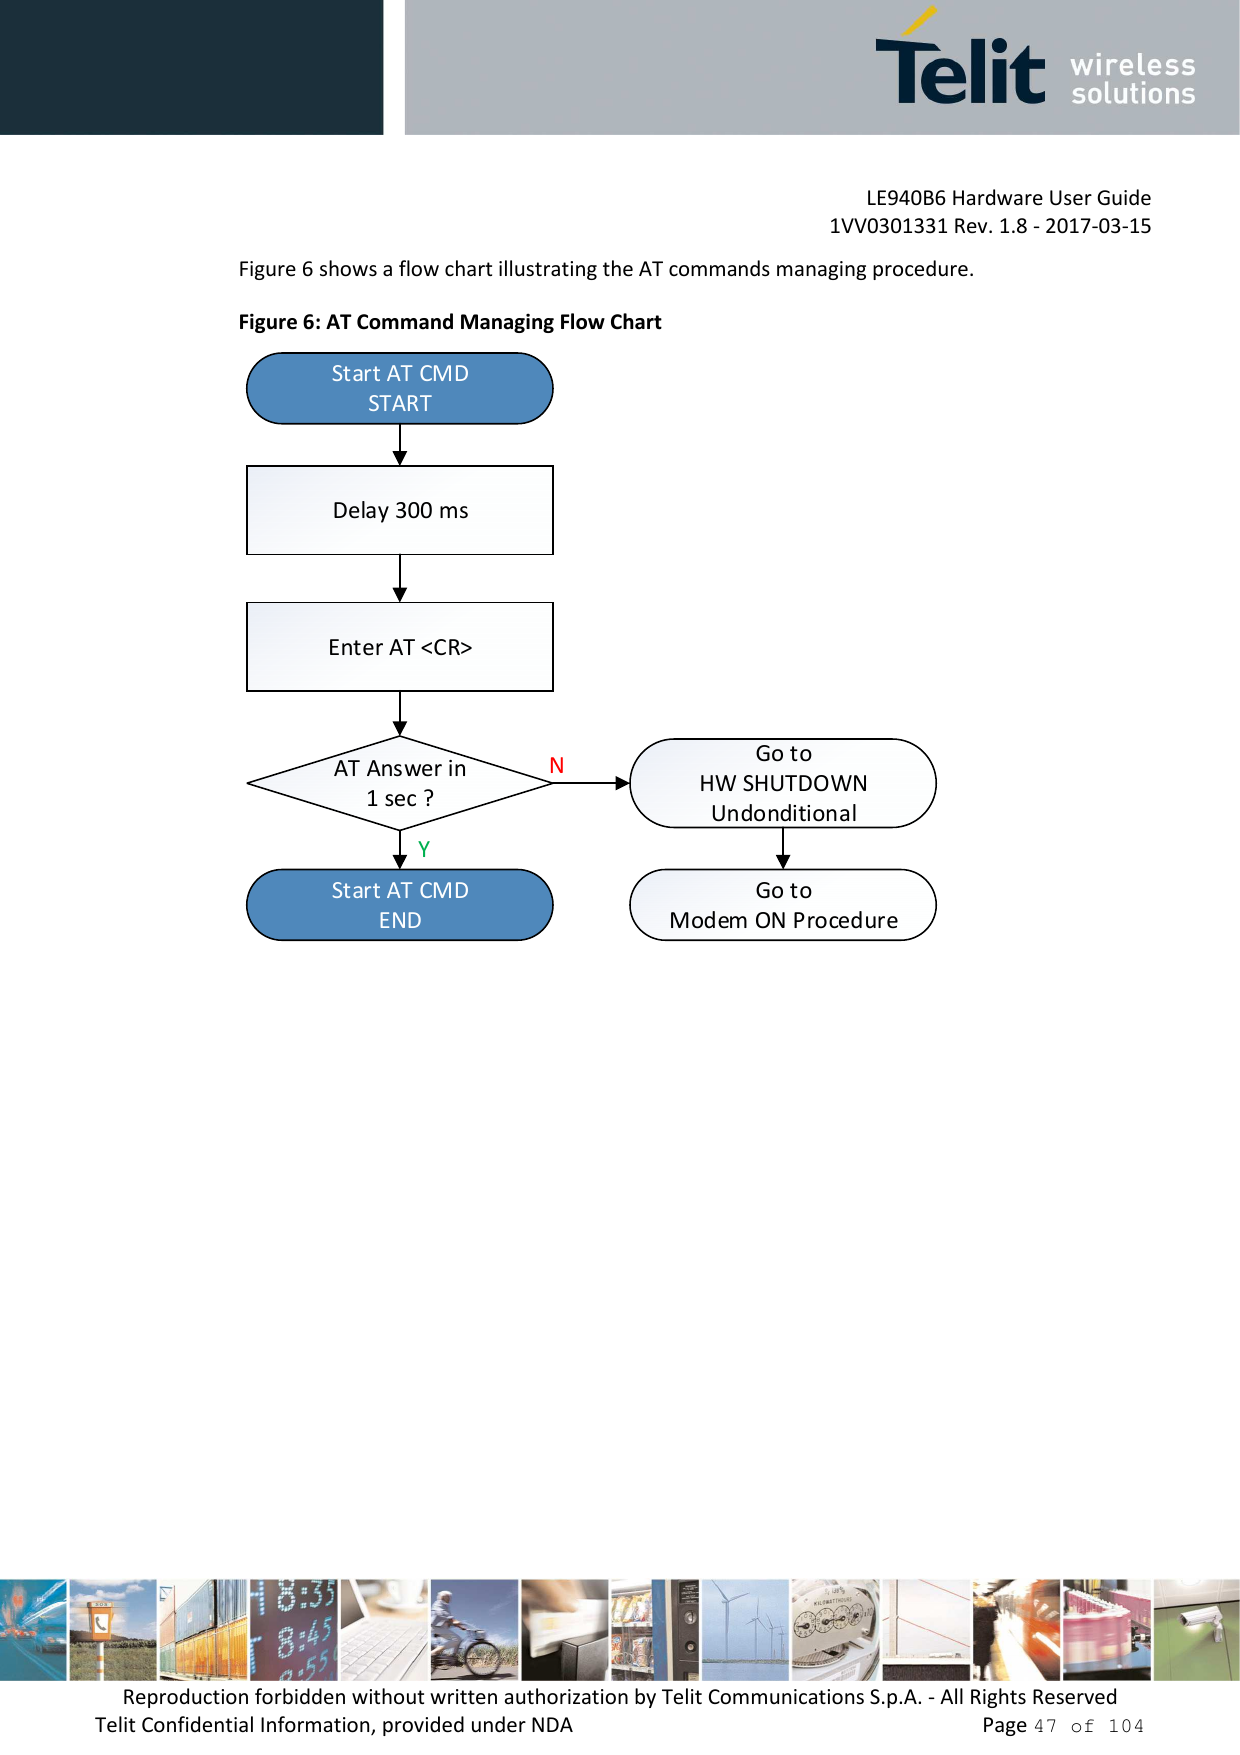 LE940B6 Hardware User Guide     1VV0301331 Rev. 1.8 - 2017-03-15 Reproduction forbidden without written authorization by Telit Communications S.p.A. - All Rights Reserved Telit Confidential Information, provided under NDA                 Page 47 of 104 Figure 6 shows a flow chart illustrating the AT commands managing procedure. Figure 6: AT Command Managing Flow Chart Start AT CMDSTARTDelay 300 msEnter AT <CR>AT Answer in1 sec ?Start AT CMDENDYGo toModem ON ProcedureGo toHW SHUTDOWNUndonditionalN